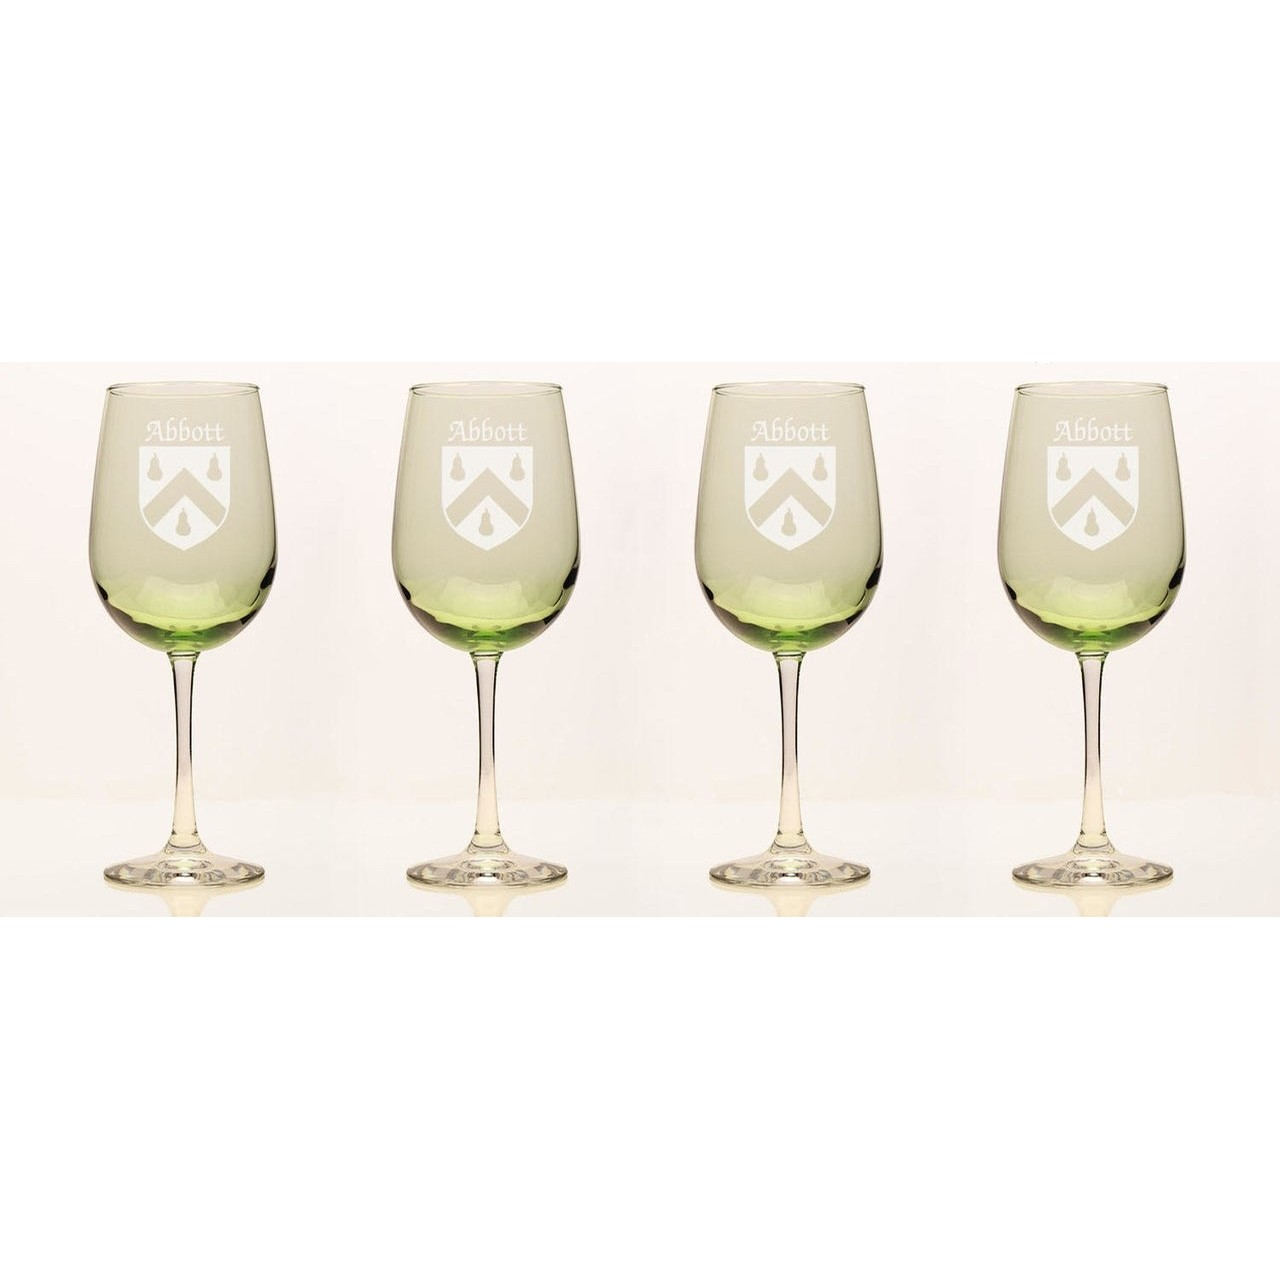 Irish Coat of Arms Green Wine Glasses - Set of 4 (Sand Etched)